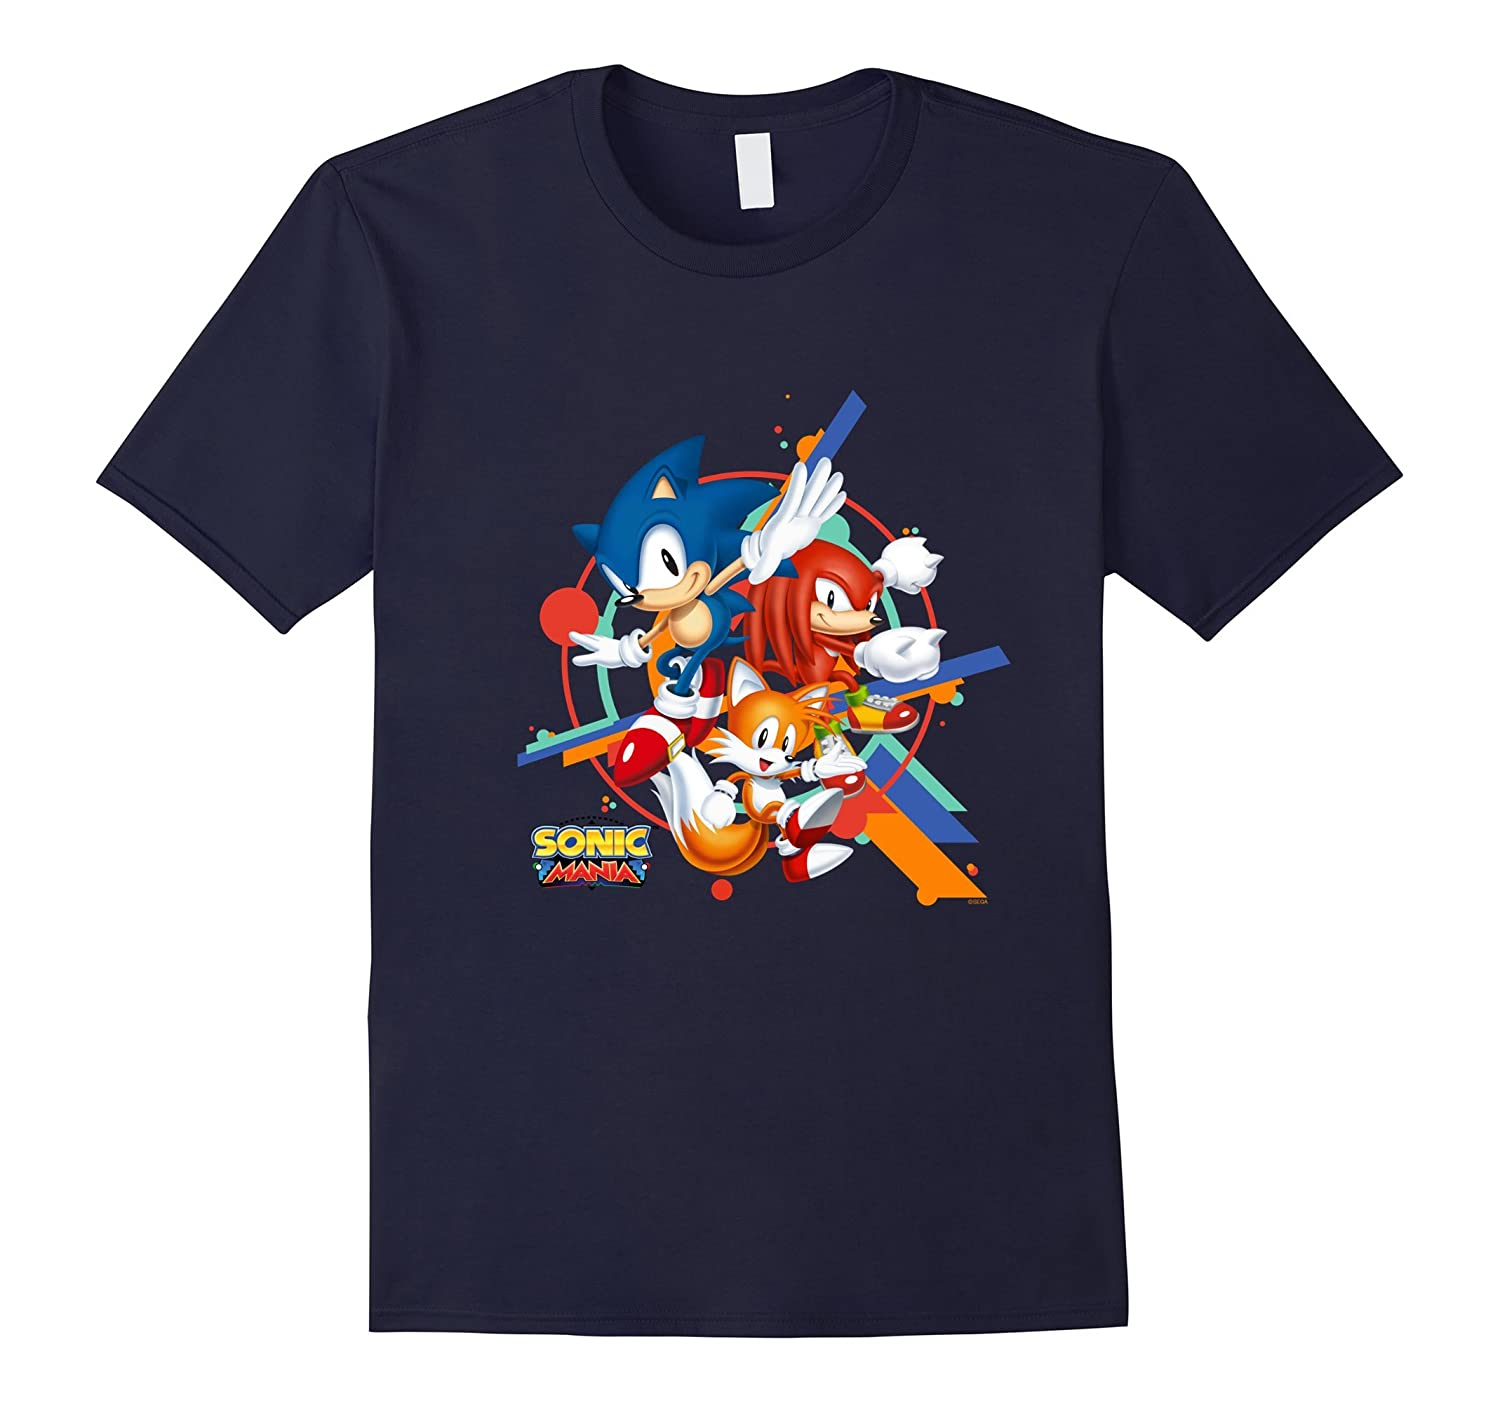 Official Sonic Mania T-Shirt - Sonic, Tails, & Knuckles-Art